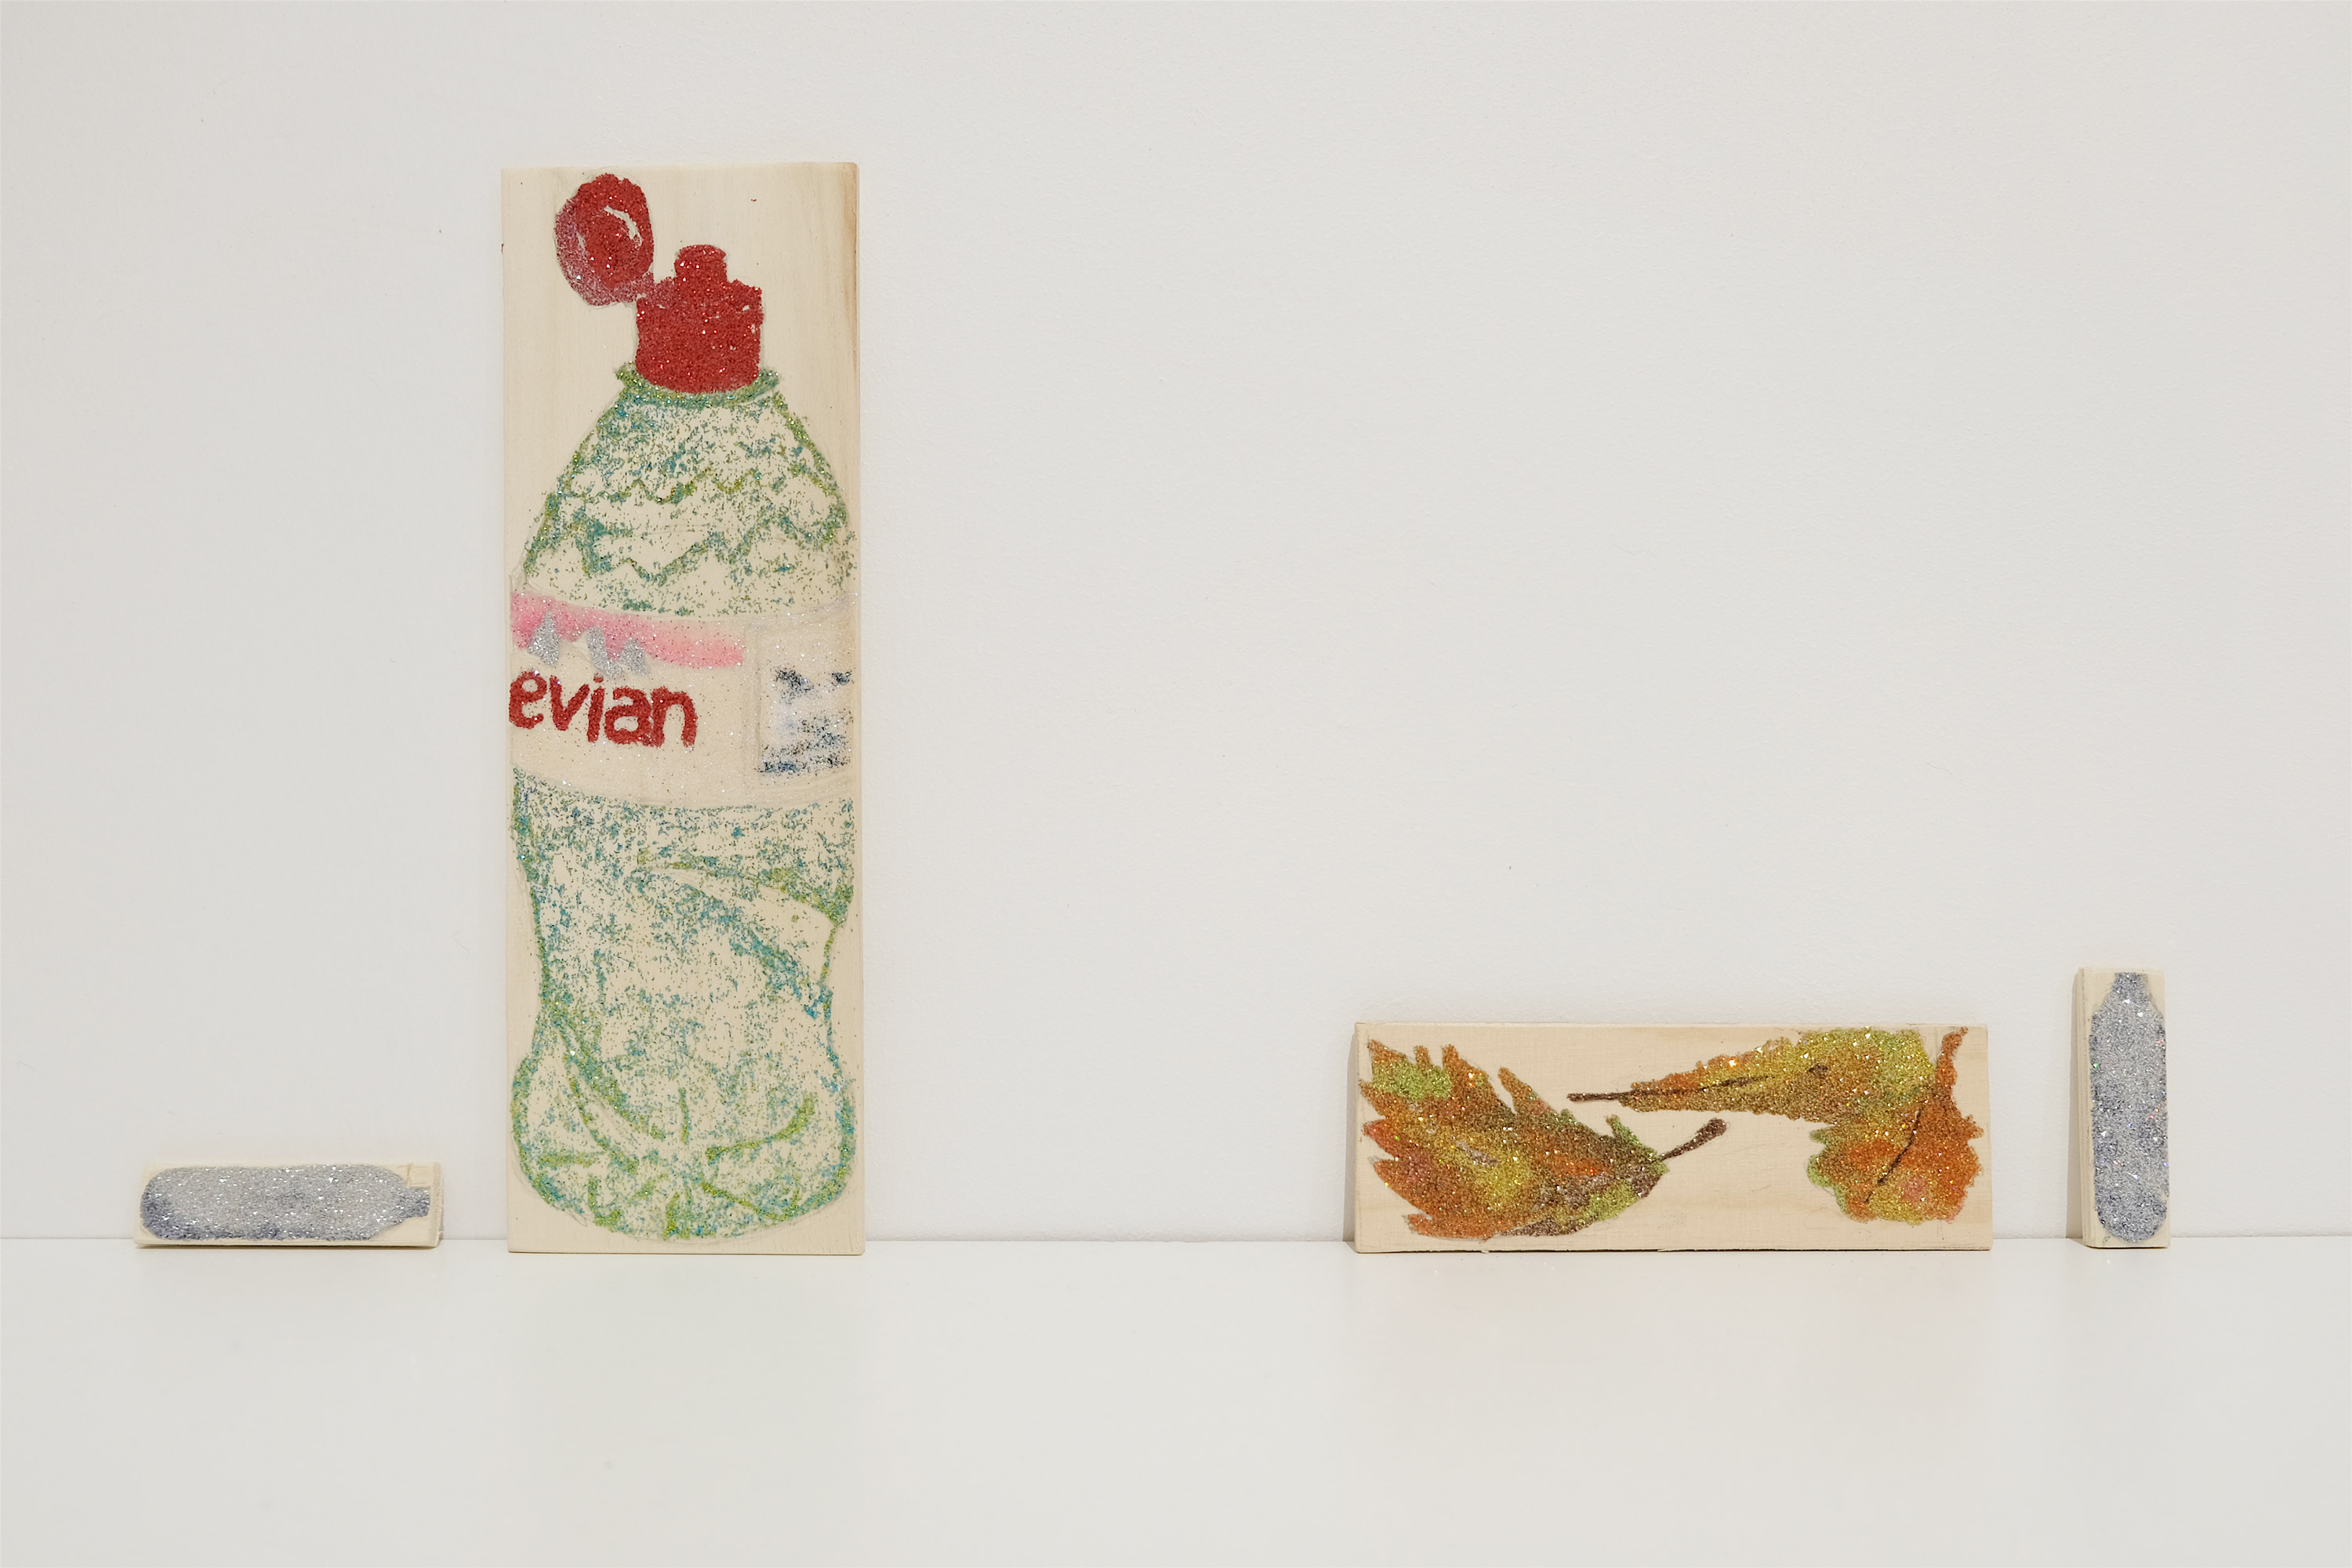 <p>Resting place (canister, Evian, leaves, canister)</p>